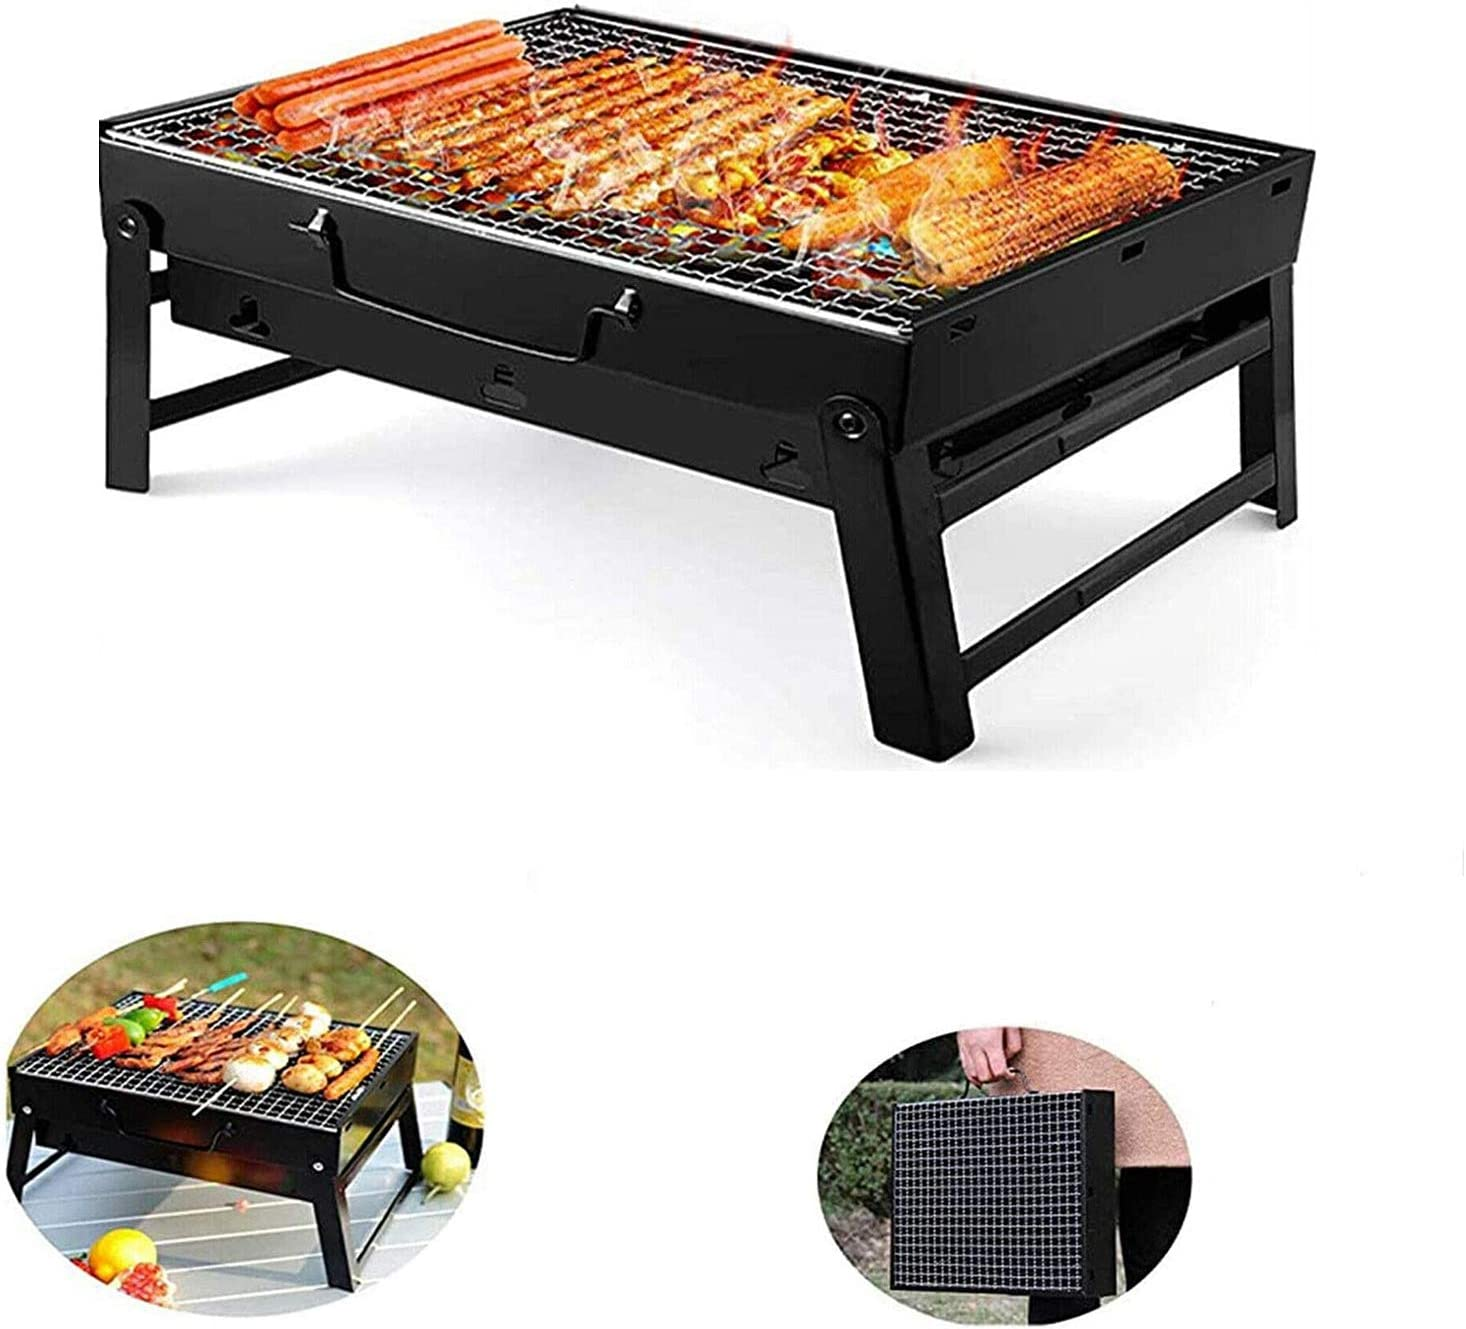 Smokeless Barbecue Tool Kits for Outdoor Picnic Patio Backyard Camping Cooking 89x37x36cm FlyingBanana001 Electric Rotator Grill Portable BBQ Barbecue Rotating Grill